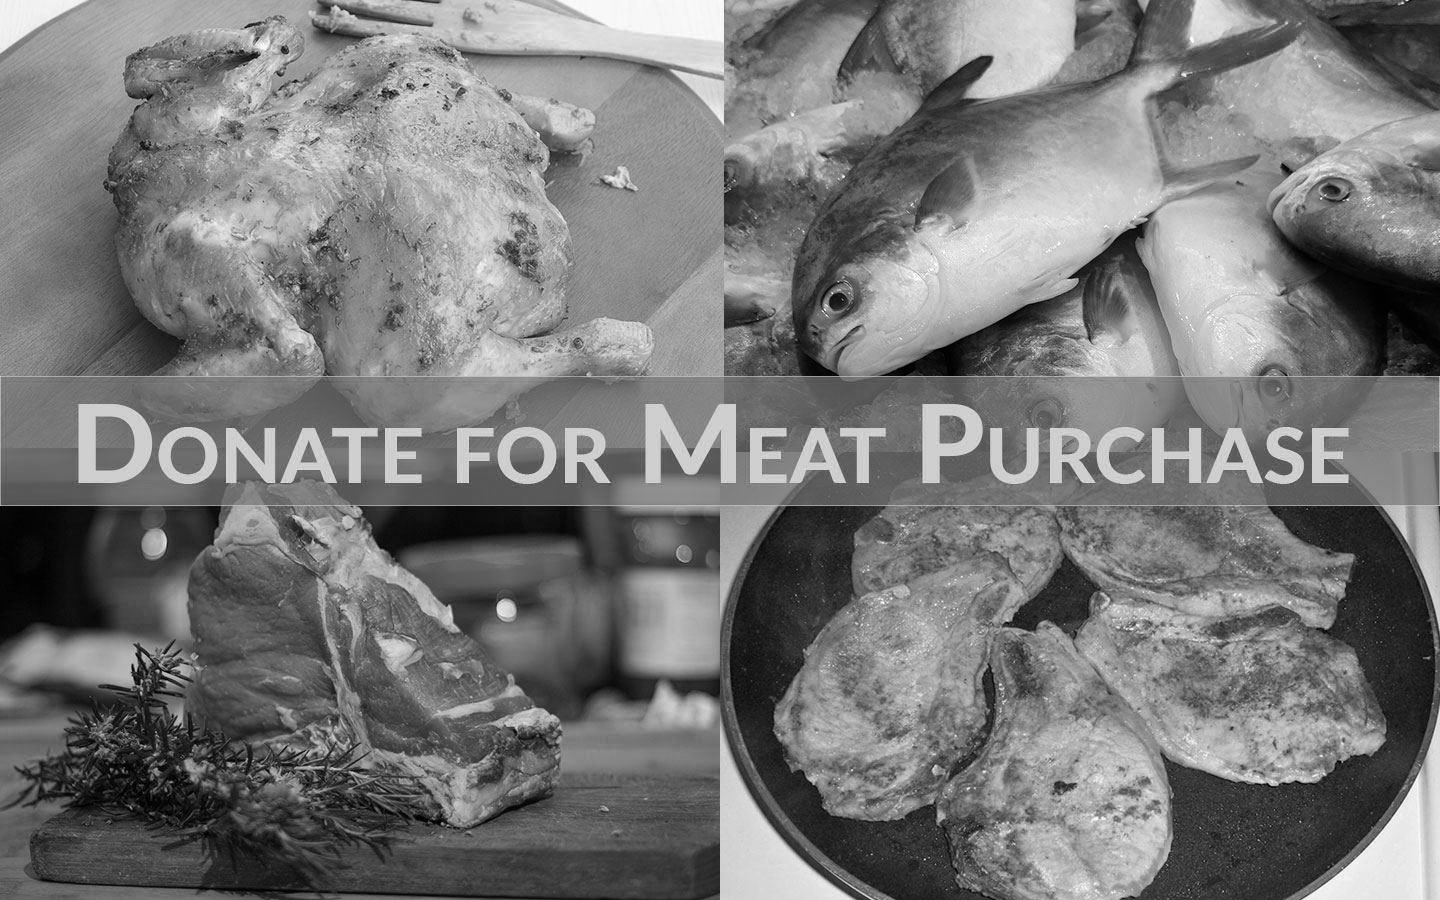 Help Us Supply Their Need: Donate For Meat